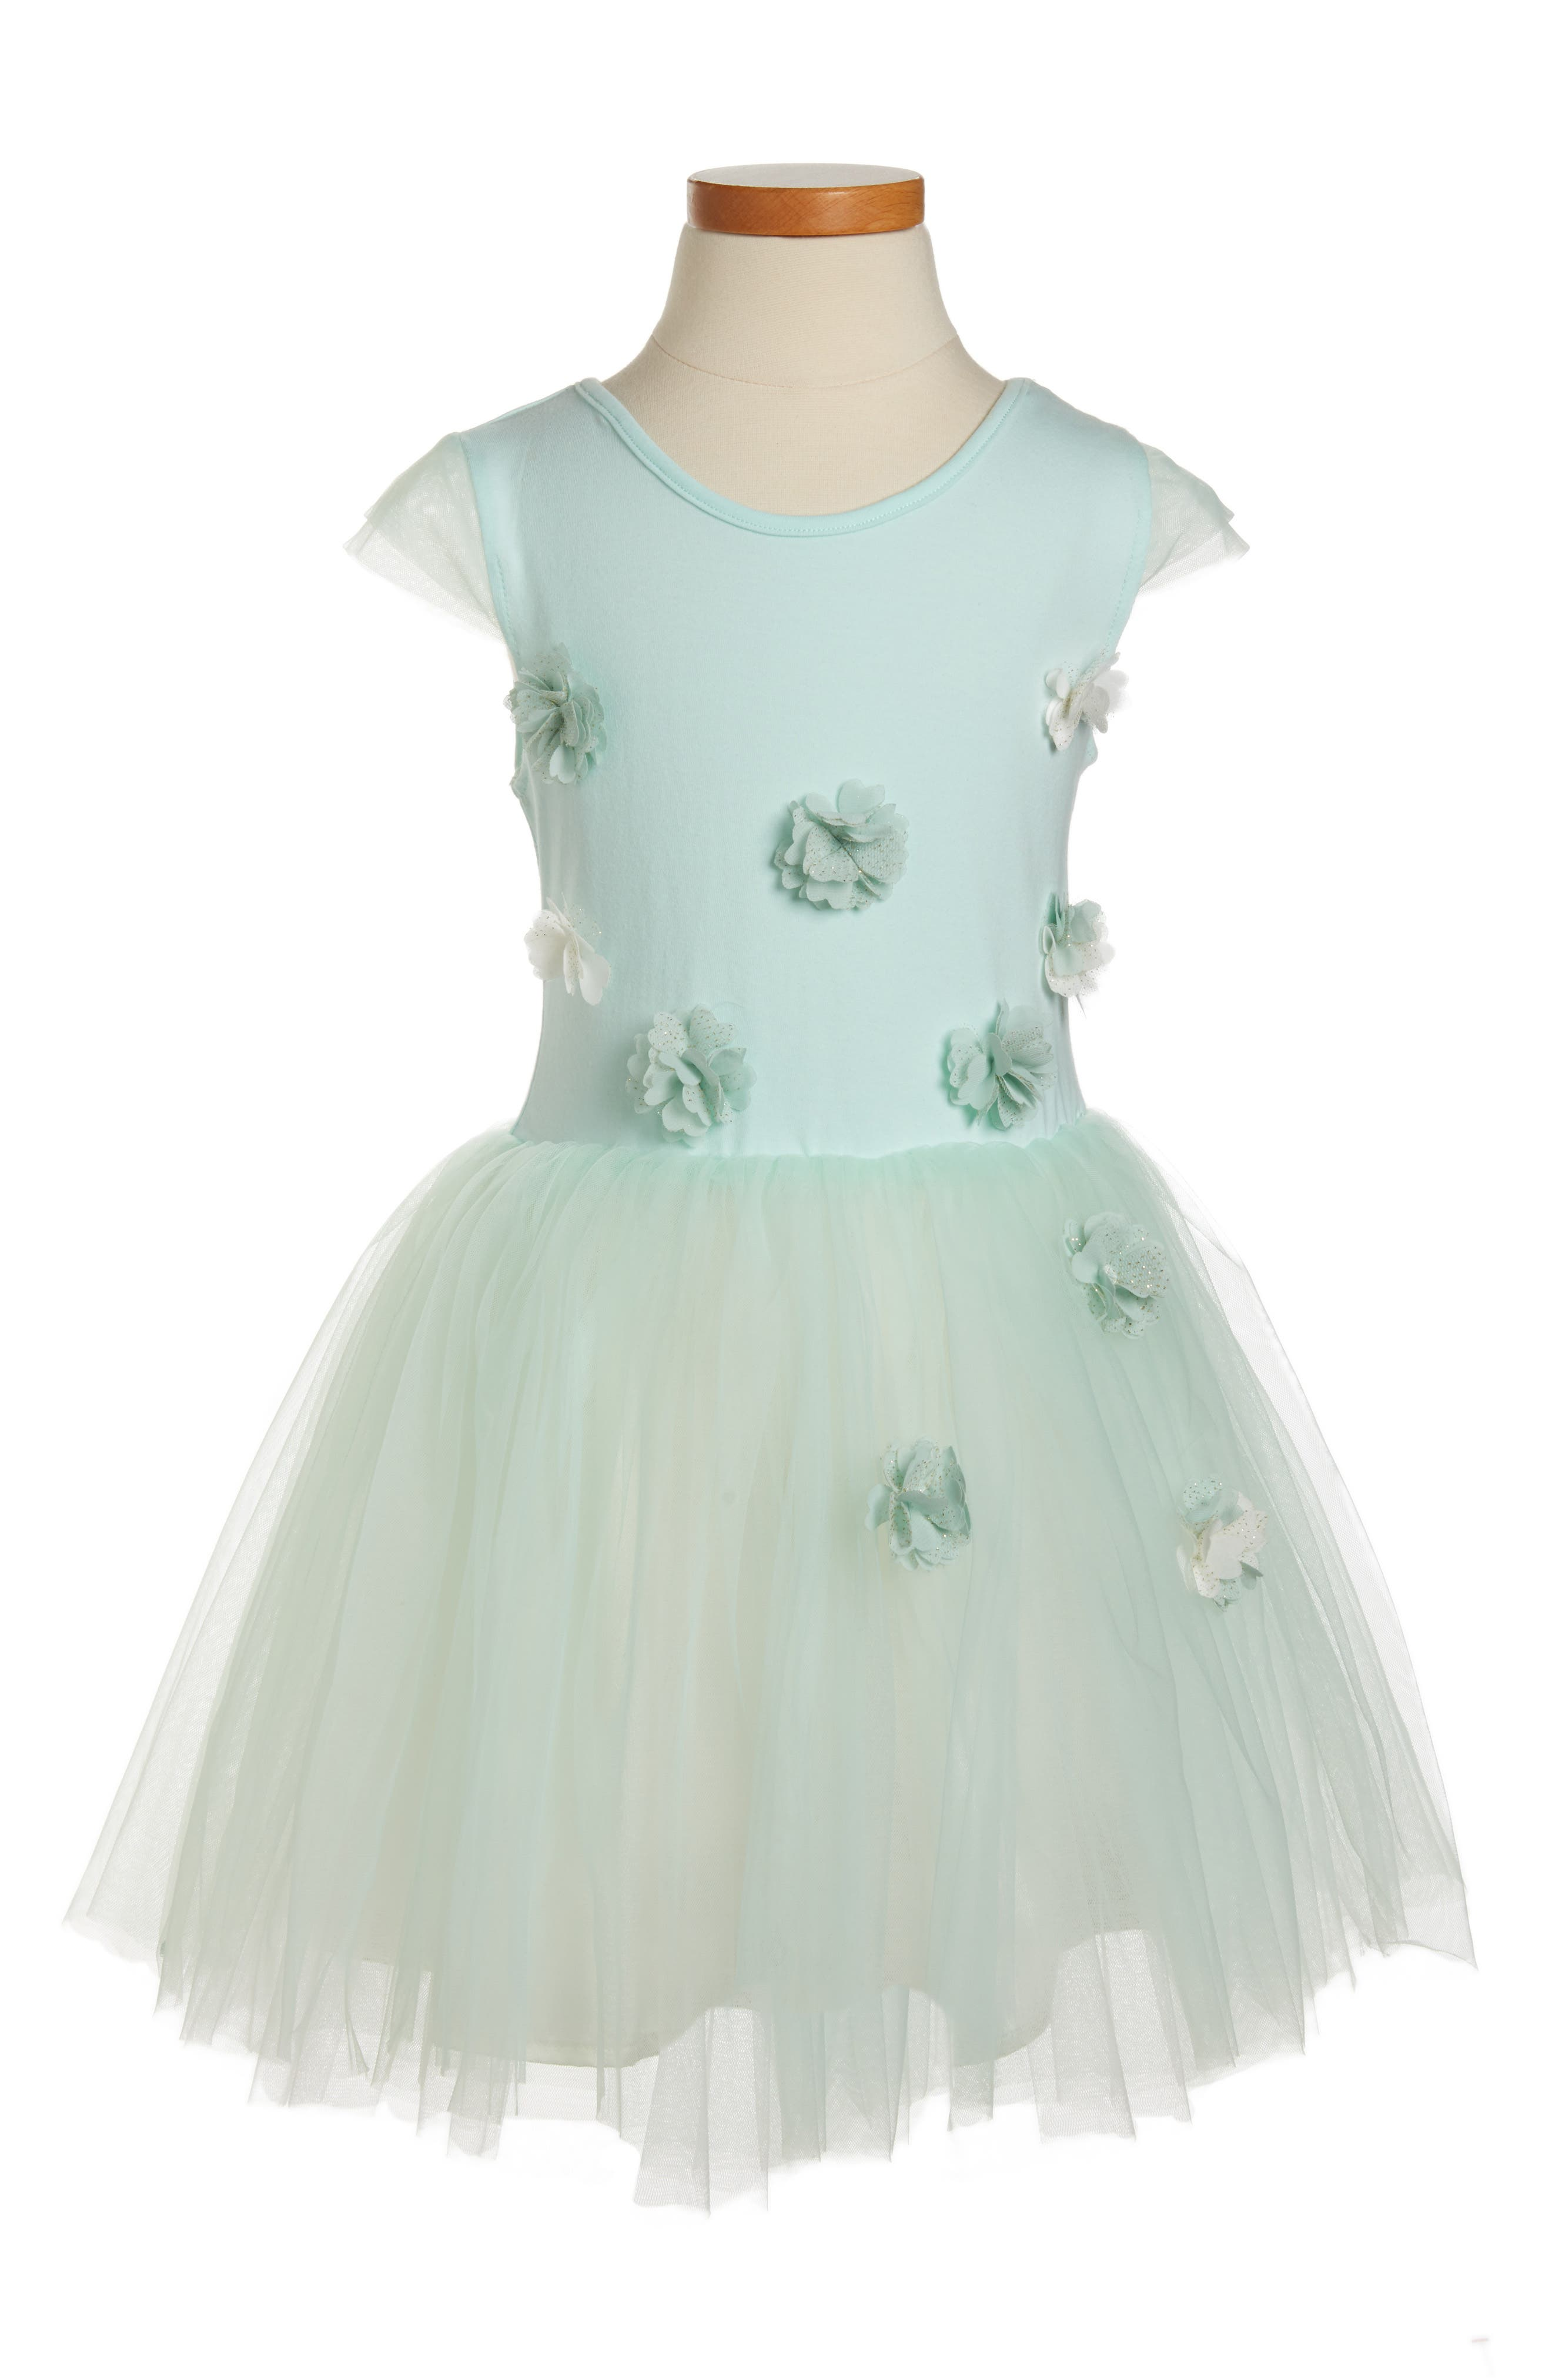 POPATU, Flower Tulle Dress, Main thumbnail 1, color, MINT